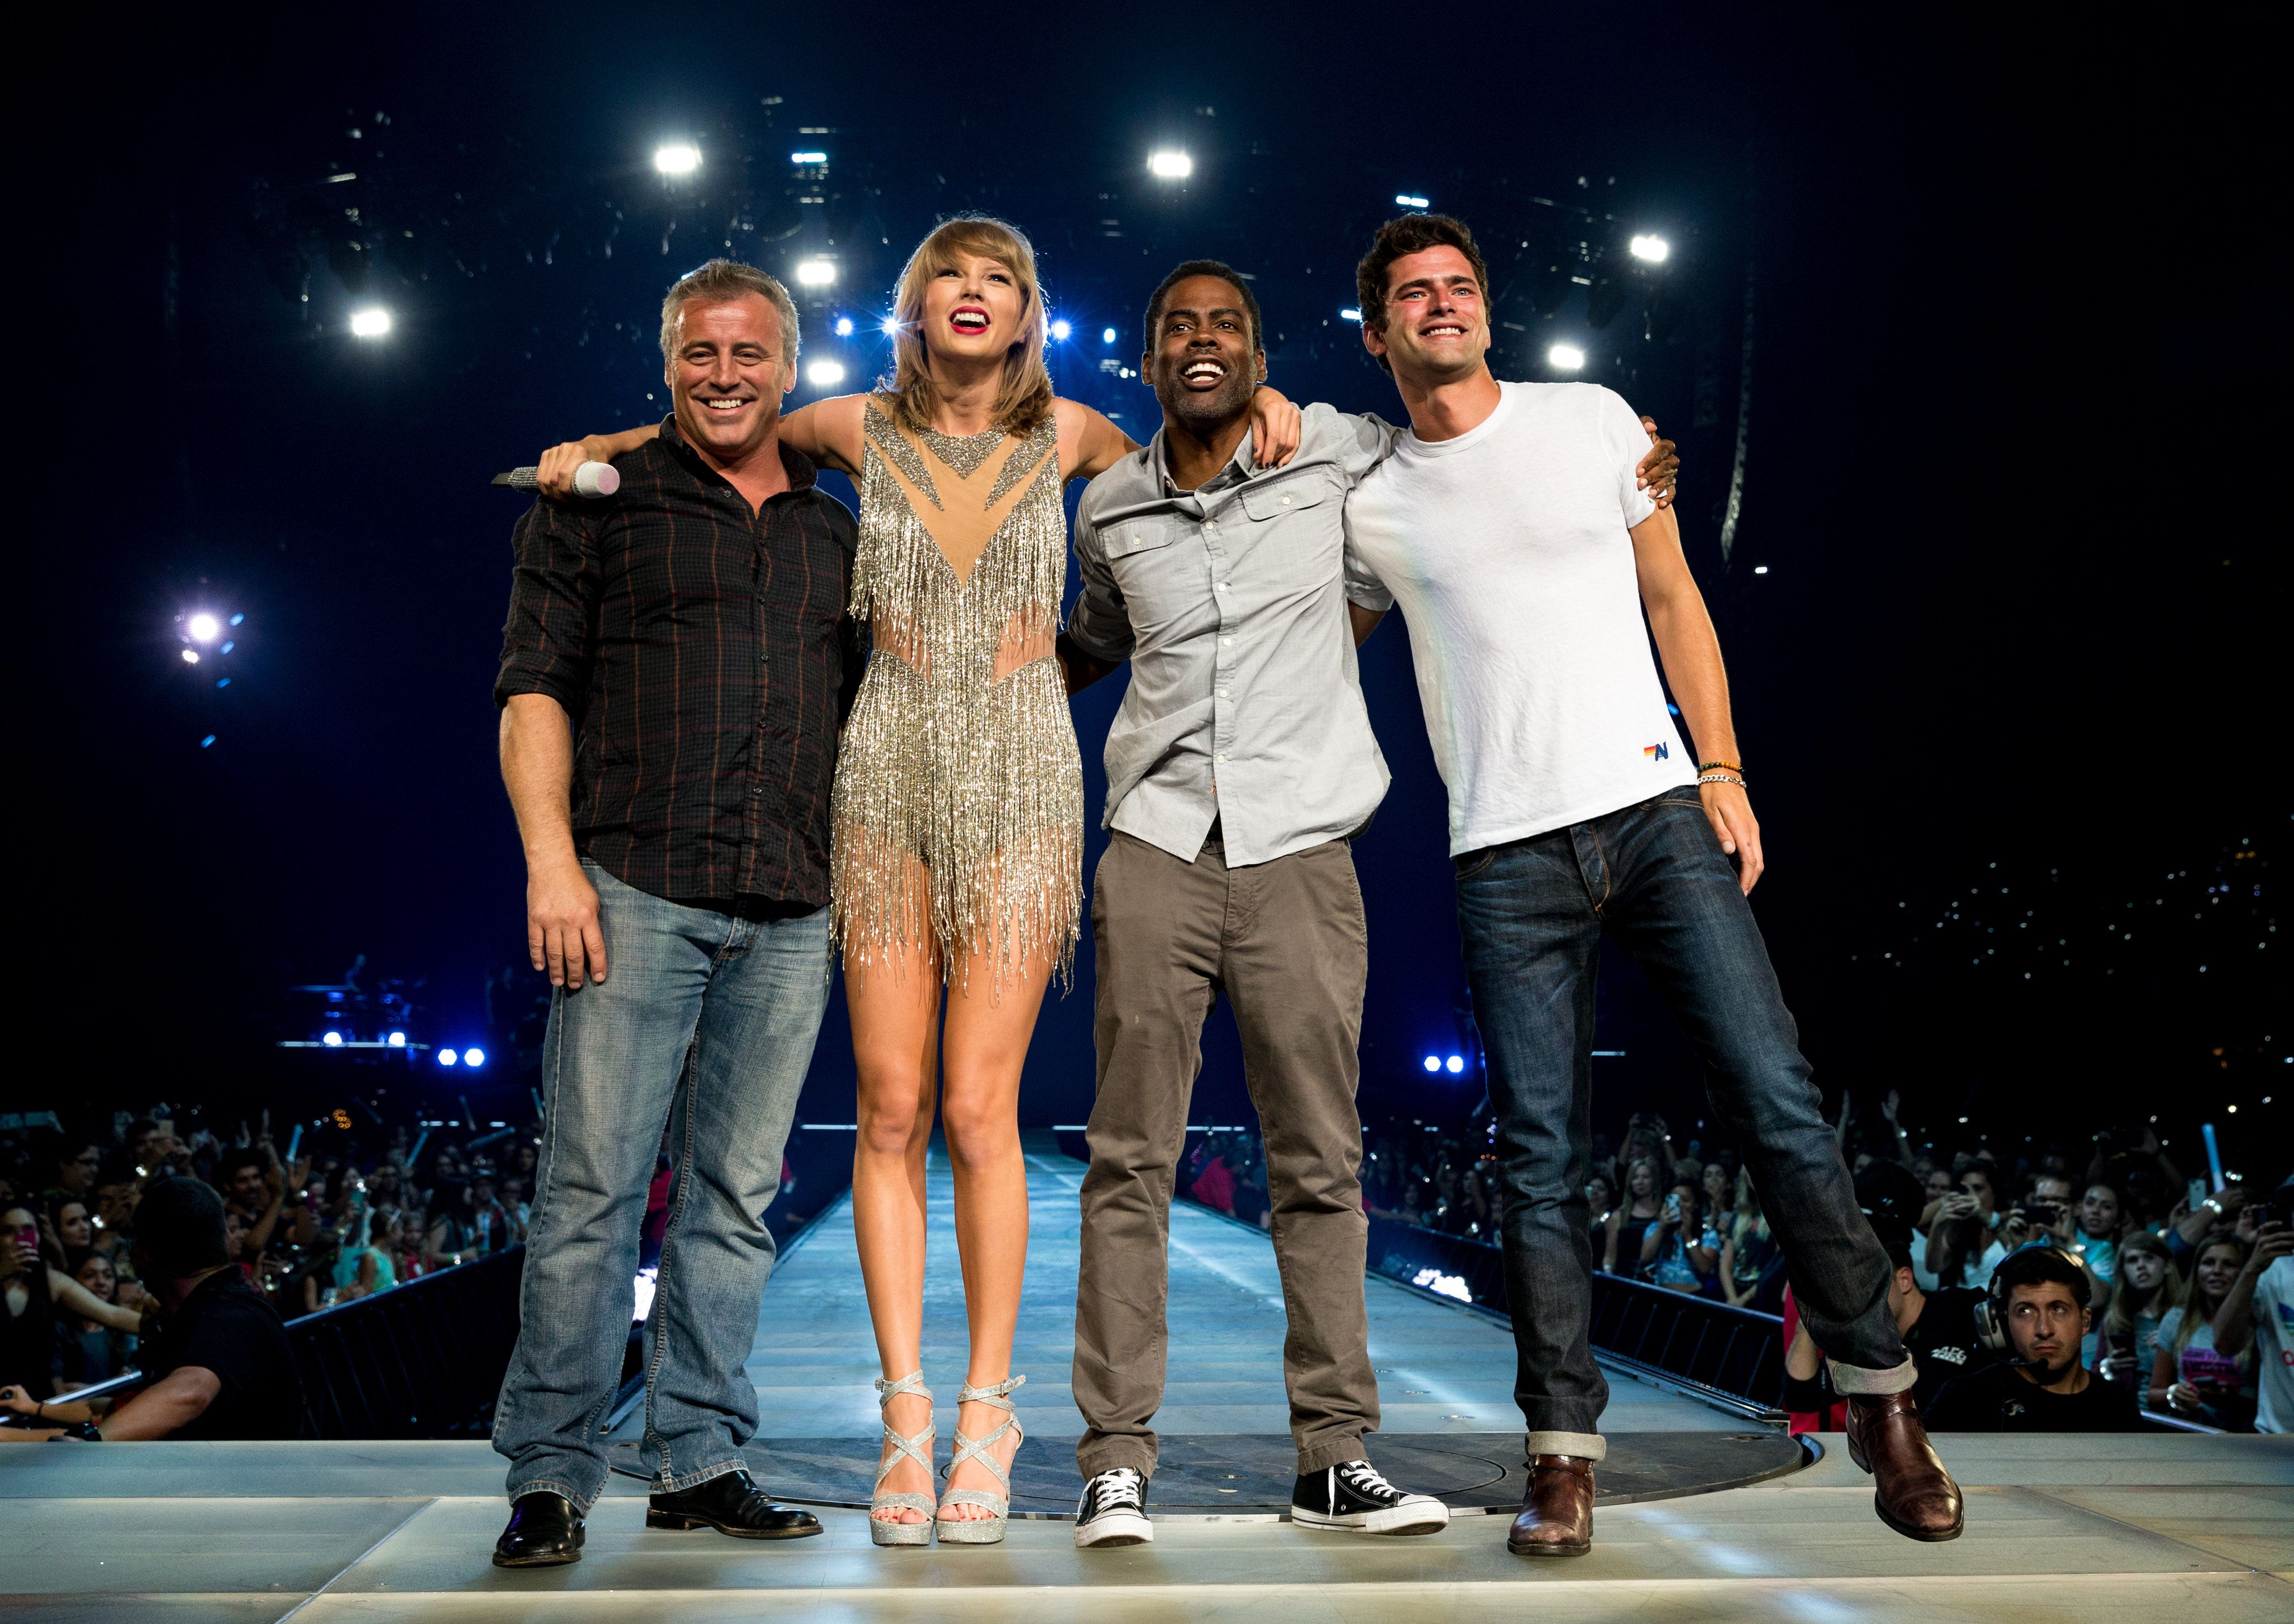 LOS ANGELES, CA - AUGUST 22:  (L-R) Actor Matt Leblanc, singer-songwriter Taylor Swift, comedian Chris Rock and actor Sean O'Pry perform onstage during Taylor Swift The 1989 World Tour Live In Los Angeles at Staples Center on August 22, 2015 in Los Angeles, California.  (Photo by Christopher Polk/Getty Images for TAS)